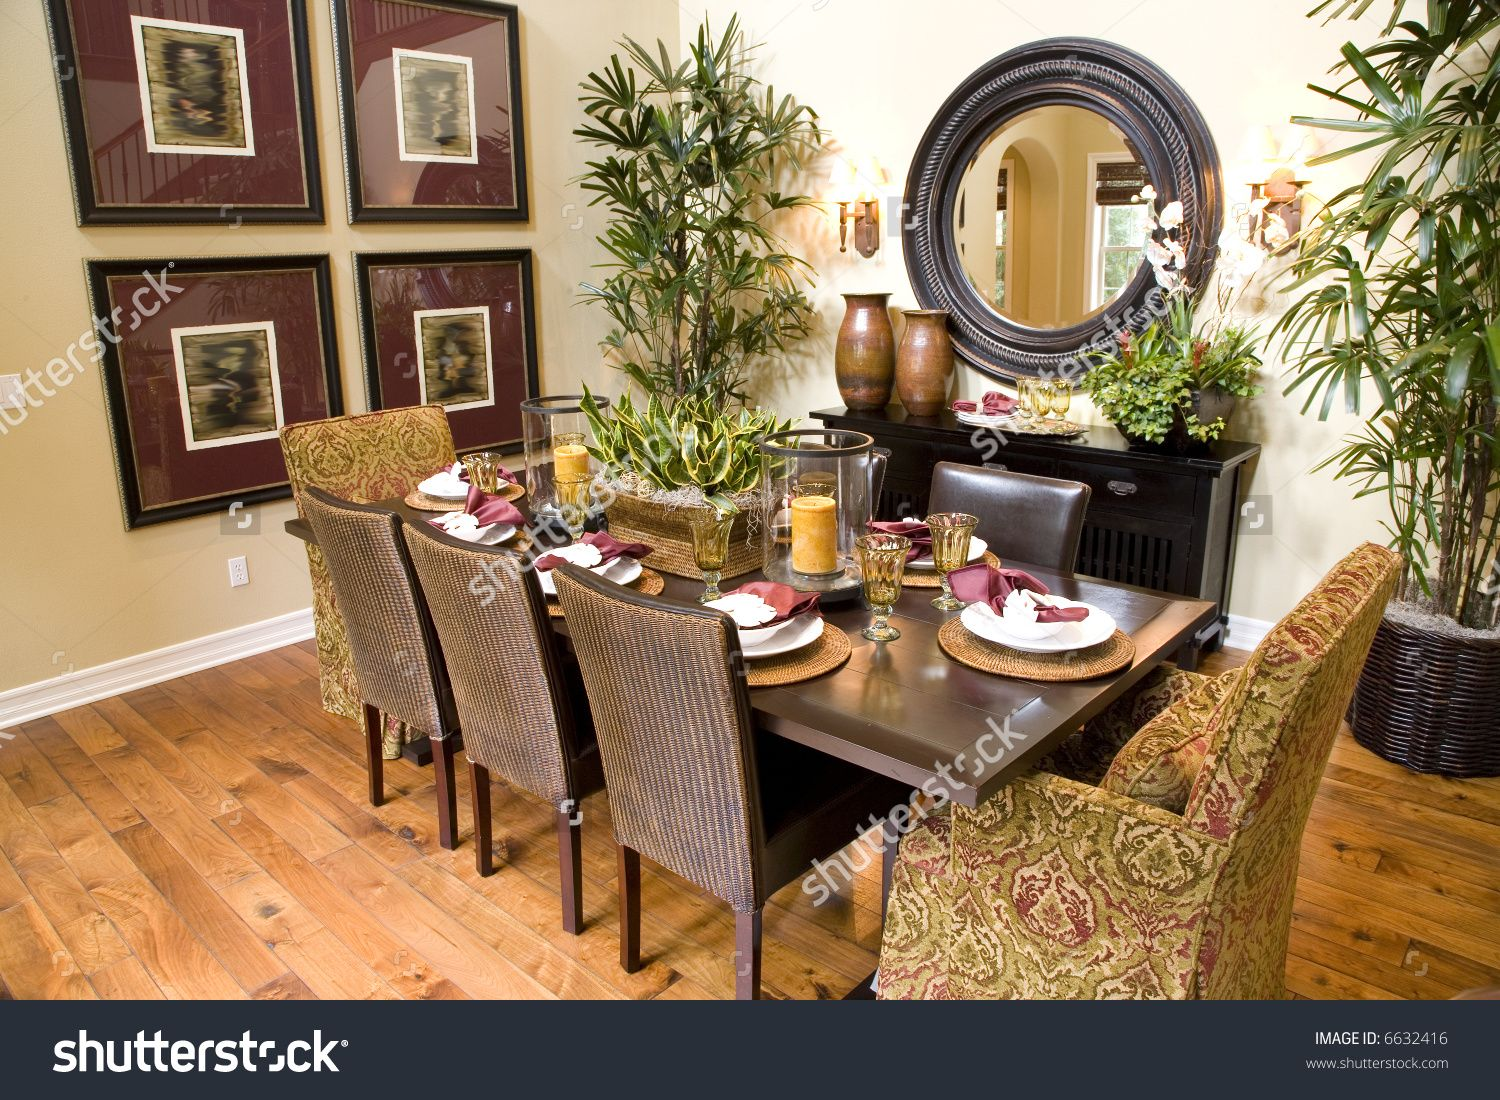 Design Dining Table Decor stock photo dining table with luxury decor 6632416 jpg 6632416